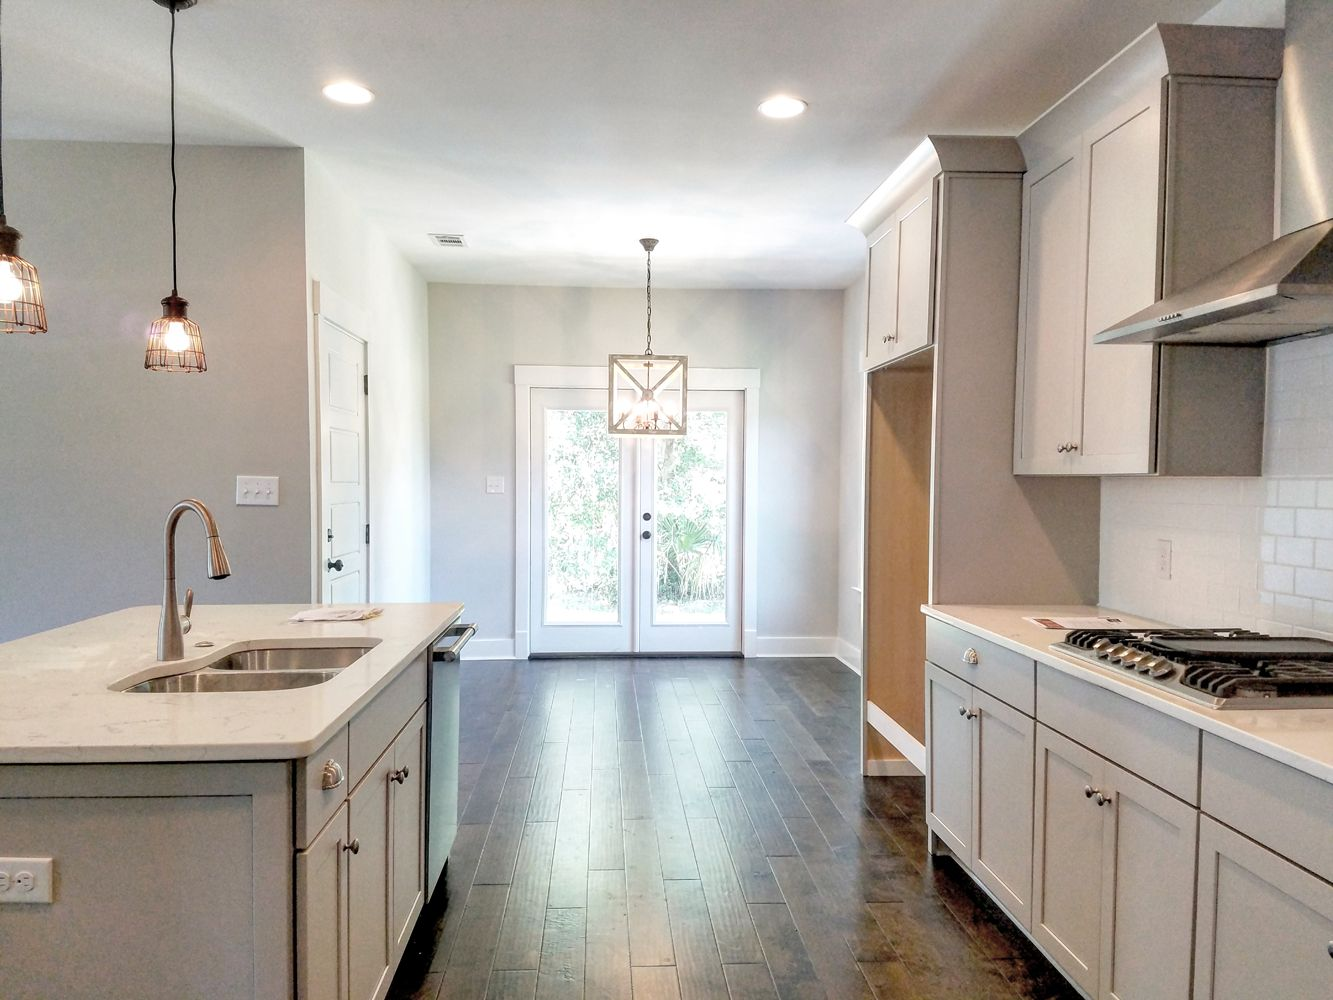 Kitchen featured in the Seabrook By Konter Quality Homes in Savannah, GA